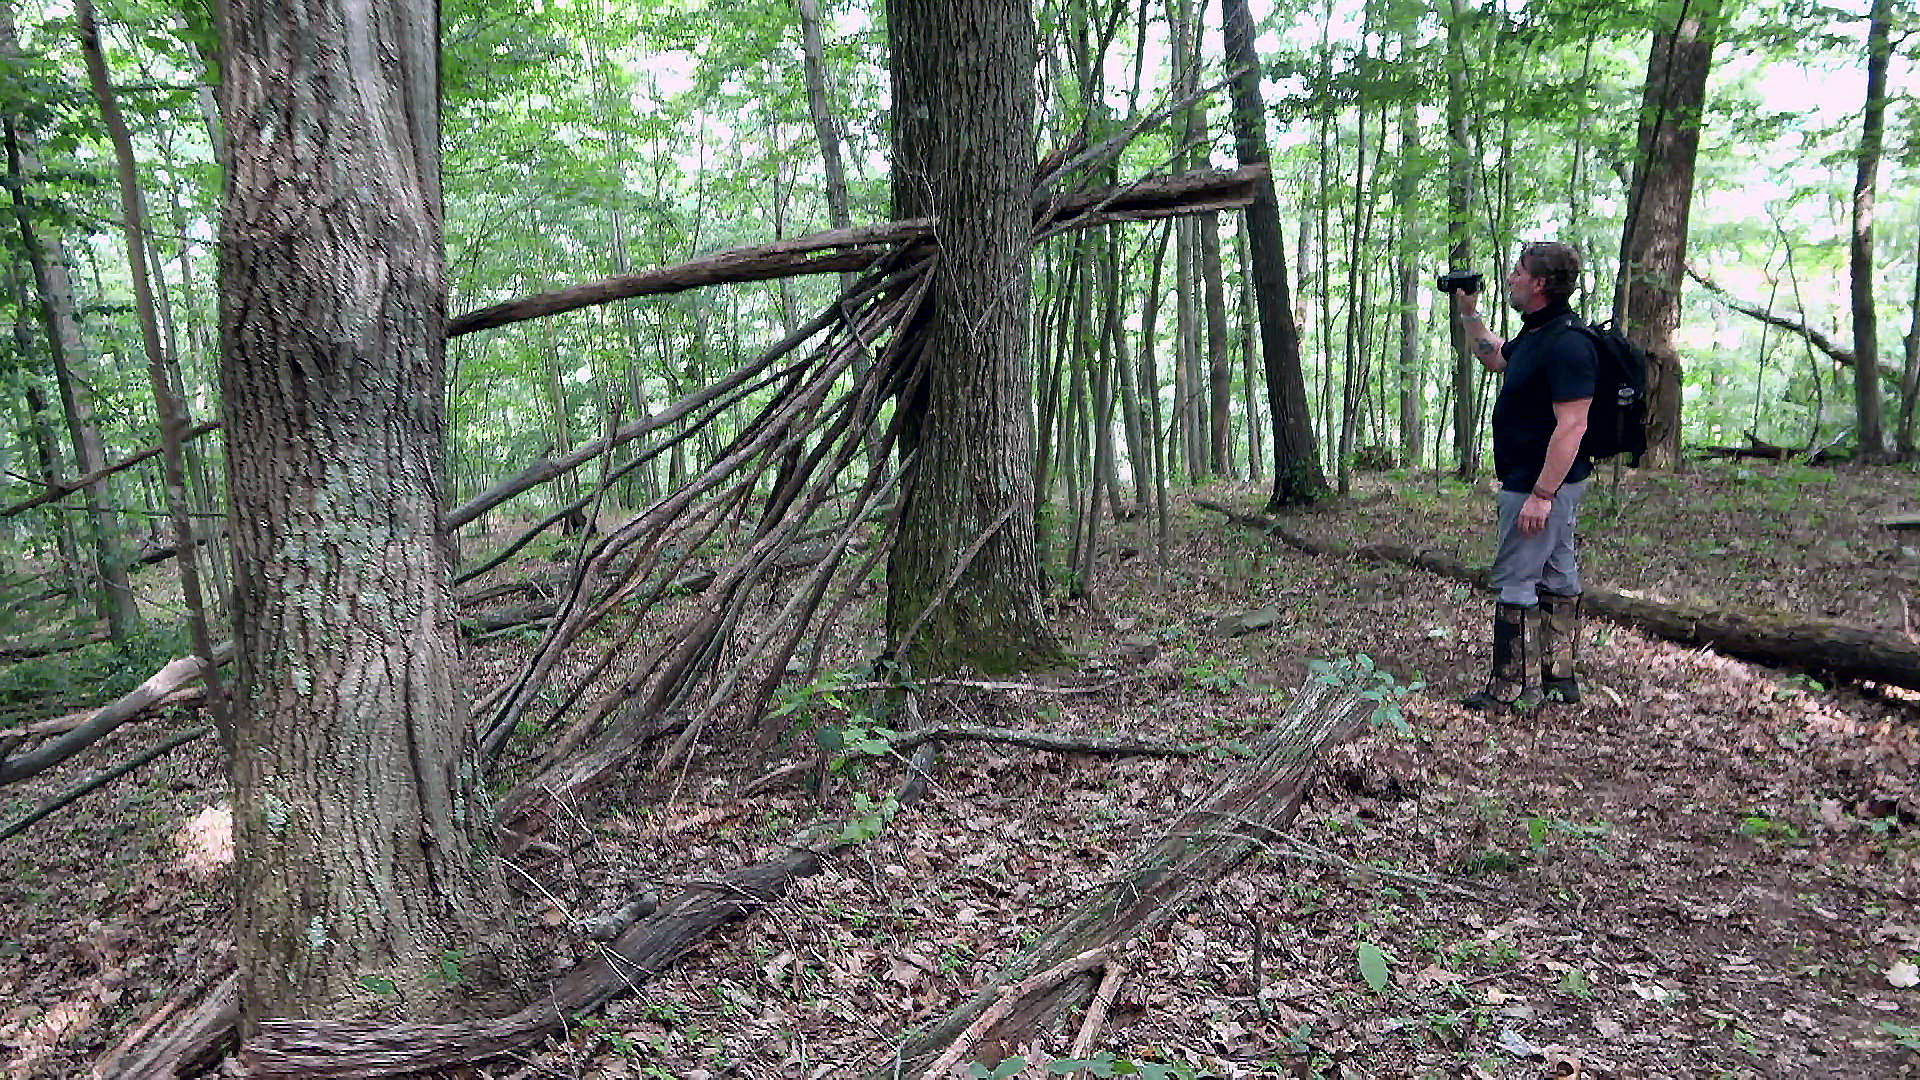 Could Kentucky's Deep Forests Hide a Piece of the 'Bigfoot Puzzle' - The Daily Yonder